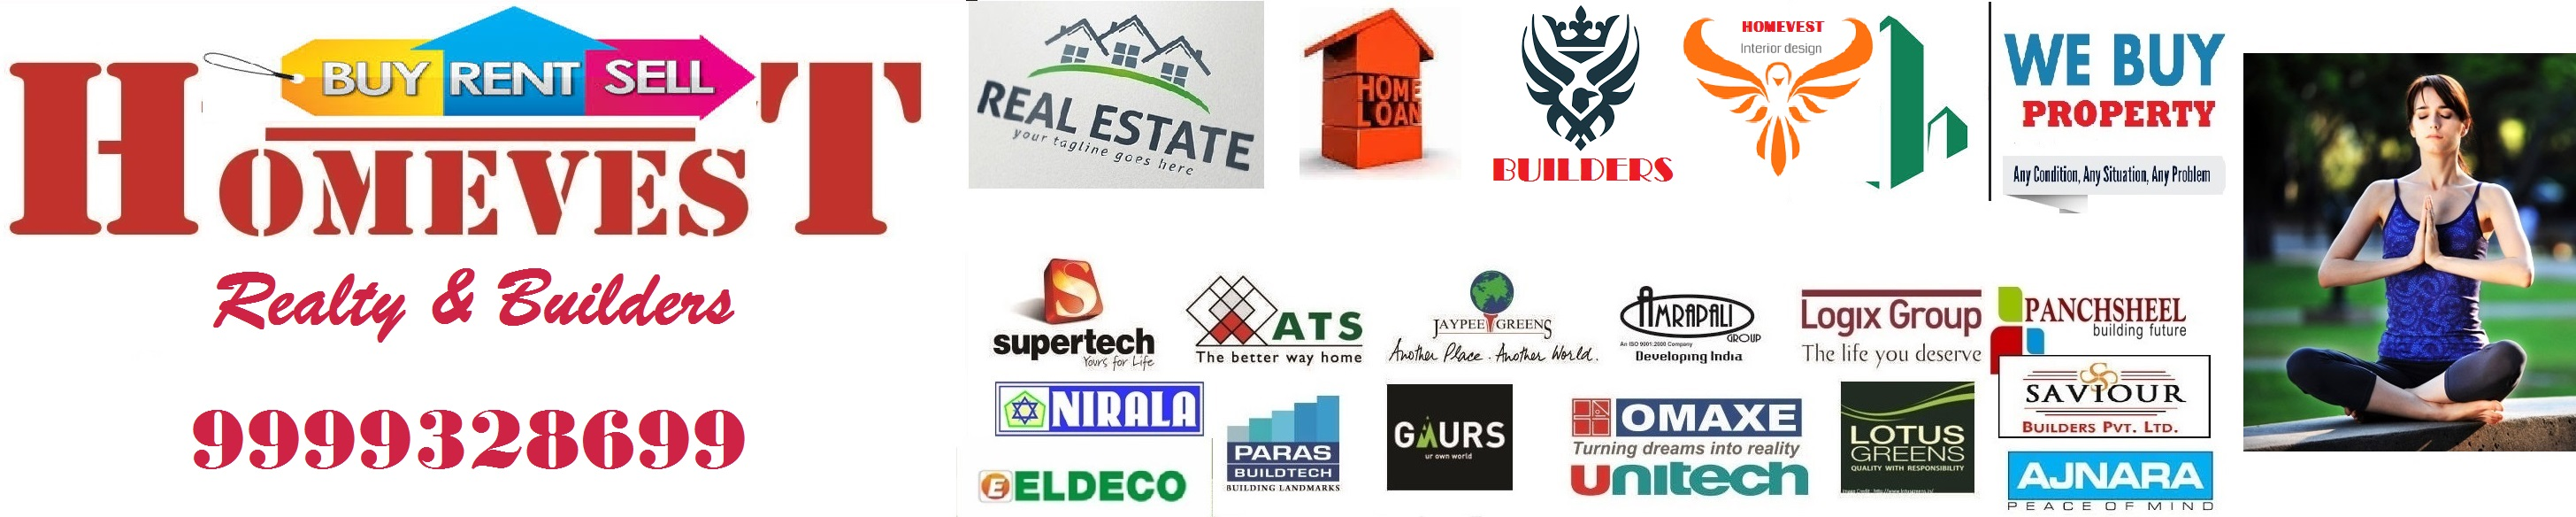 Homevest Group Real Estate Company AFFORDABE HOMES noida,greater noida,yamuna expressway,noida extension,noida expressway,central noida,near metro station,GHAZIABAD,INDIRAPURAM, VASUNDHRA,RAJNAGAR EXTENSION, AFFORDABLE HOUSING, LOAN AVAILABLE, sector 1, sector 2,sector 3, sector 4. sector 74, sector 75, sector 76, sector 77, sector 78, sector 79, sector 125, sector 126, sector 127, sector 128, sector 129, sector 130, sector 131, sector 132, sector 135, sector 137, sector 90, sector 143, sector 145, sector 150, sector 153, sector 168, best property in noida, best property at noida express way, budget property noida, cheap property, low cost property noida, flats and noida, sector 107, sector 107, sector 45, sector 46, sector 47, sector 100,sector 18, residential property and flats, commercial property, kothis, farm houses noida express way, shops, offices, banks, showrooms, best location